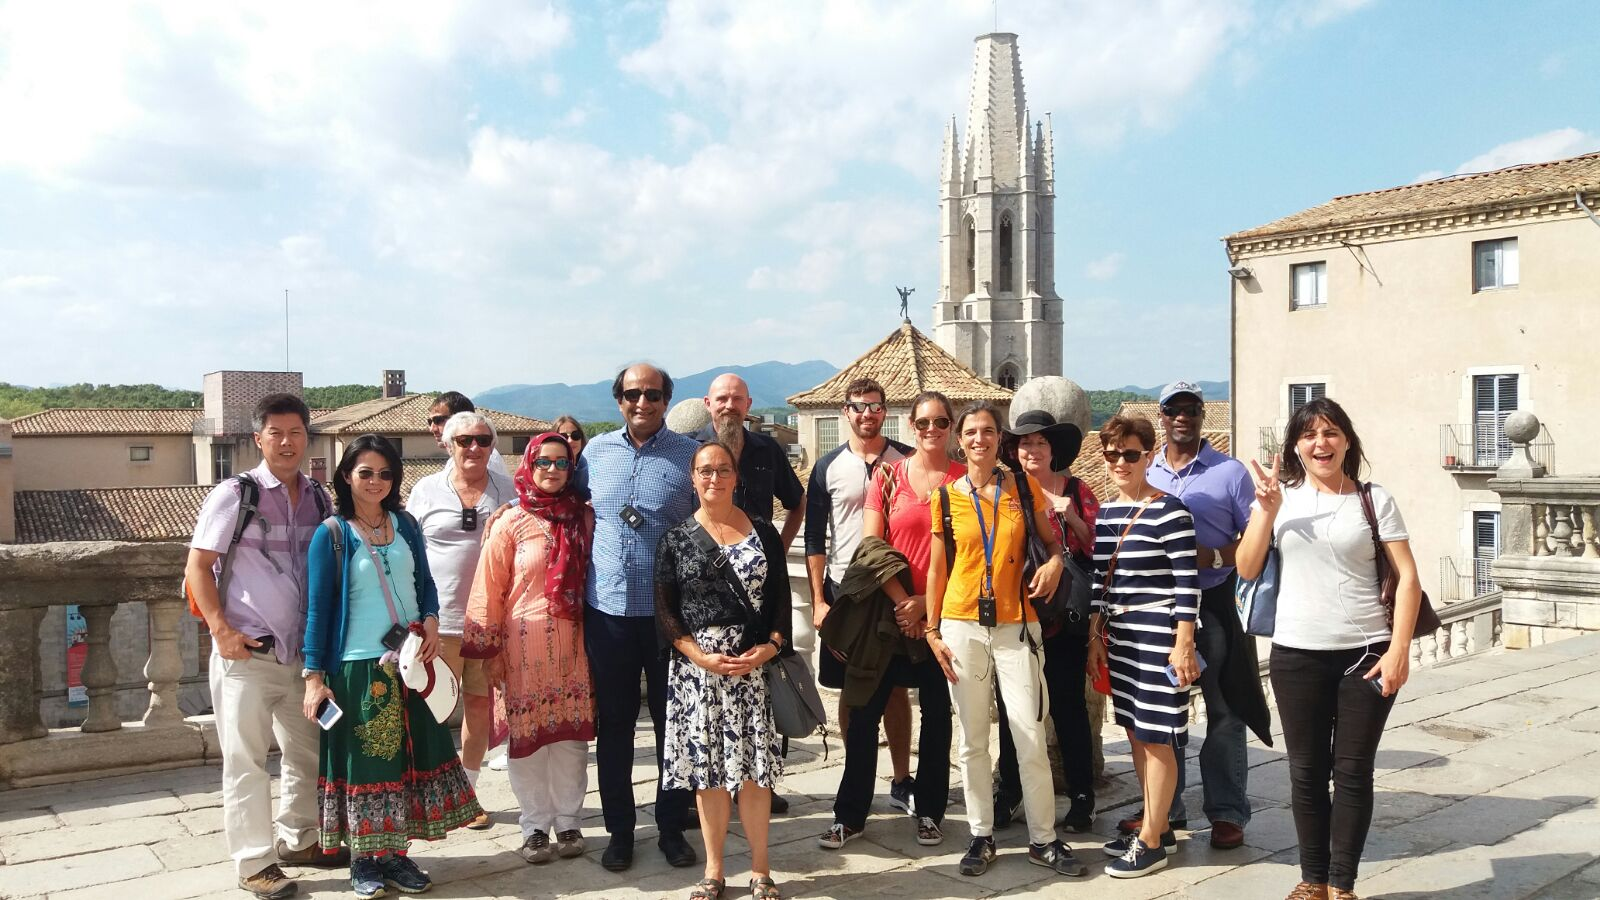 Departing from Girona: the Dalí Museum & Girona Tour